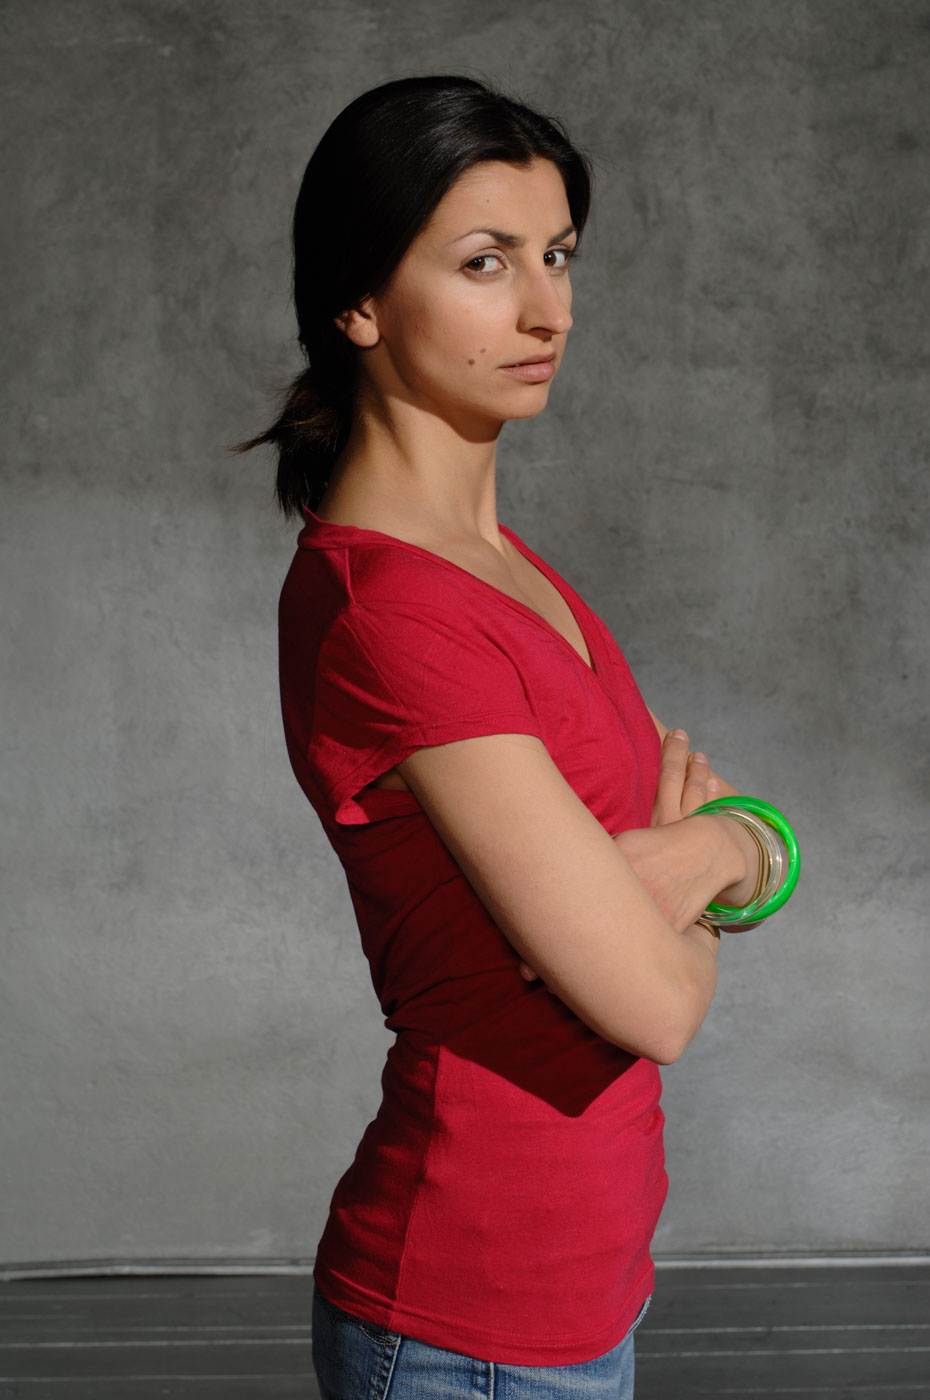 Portrait of a dark-haired girl in a red shirt